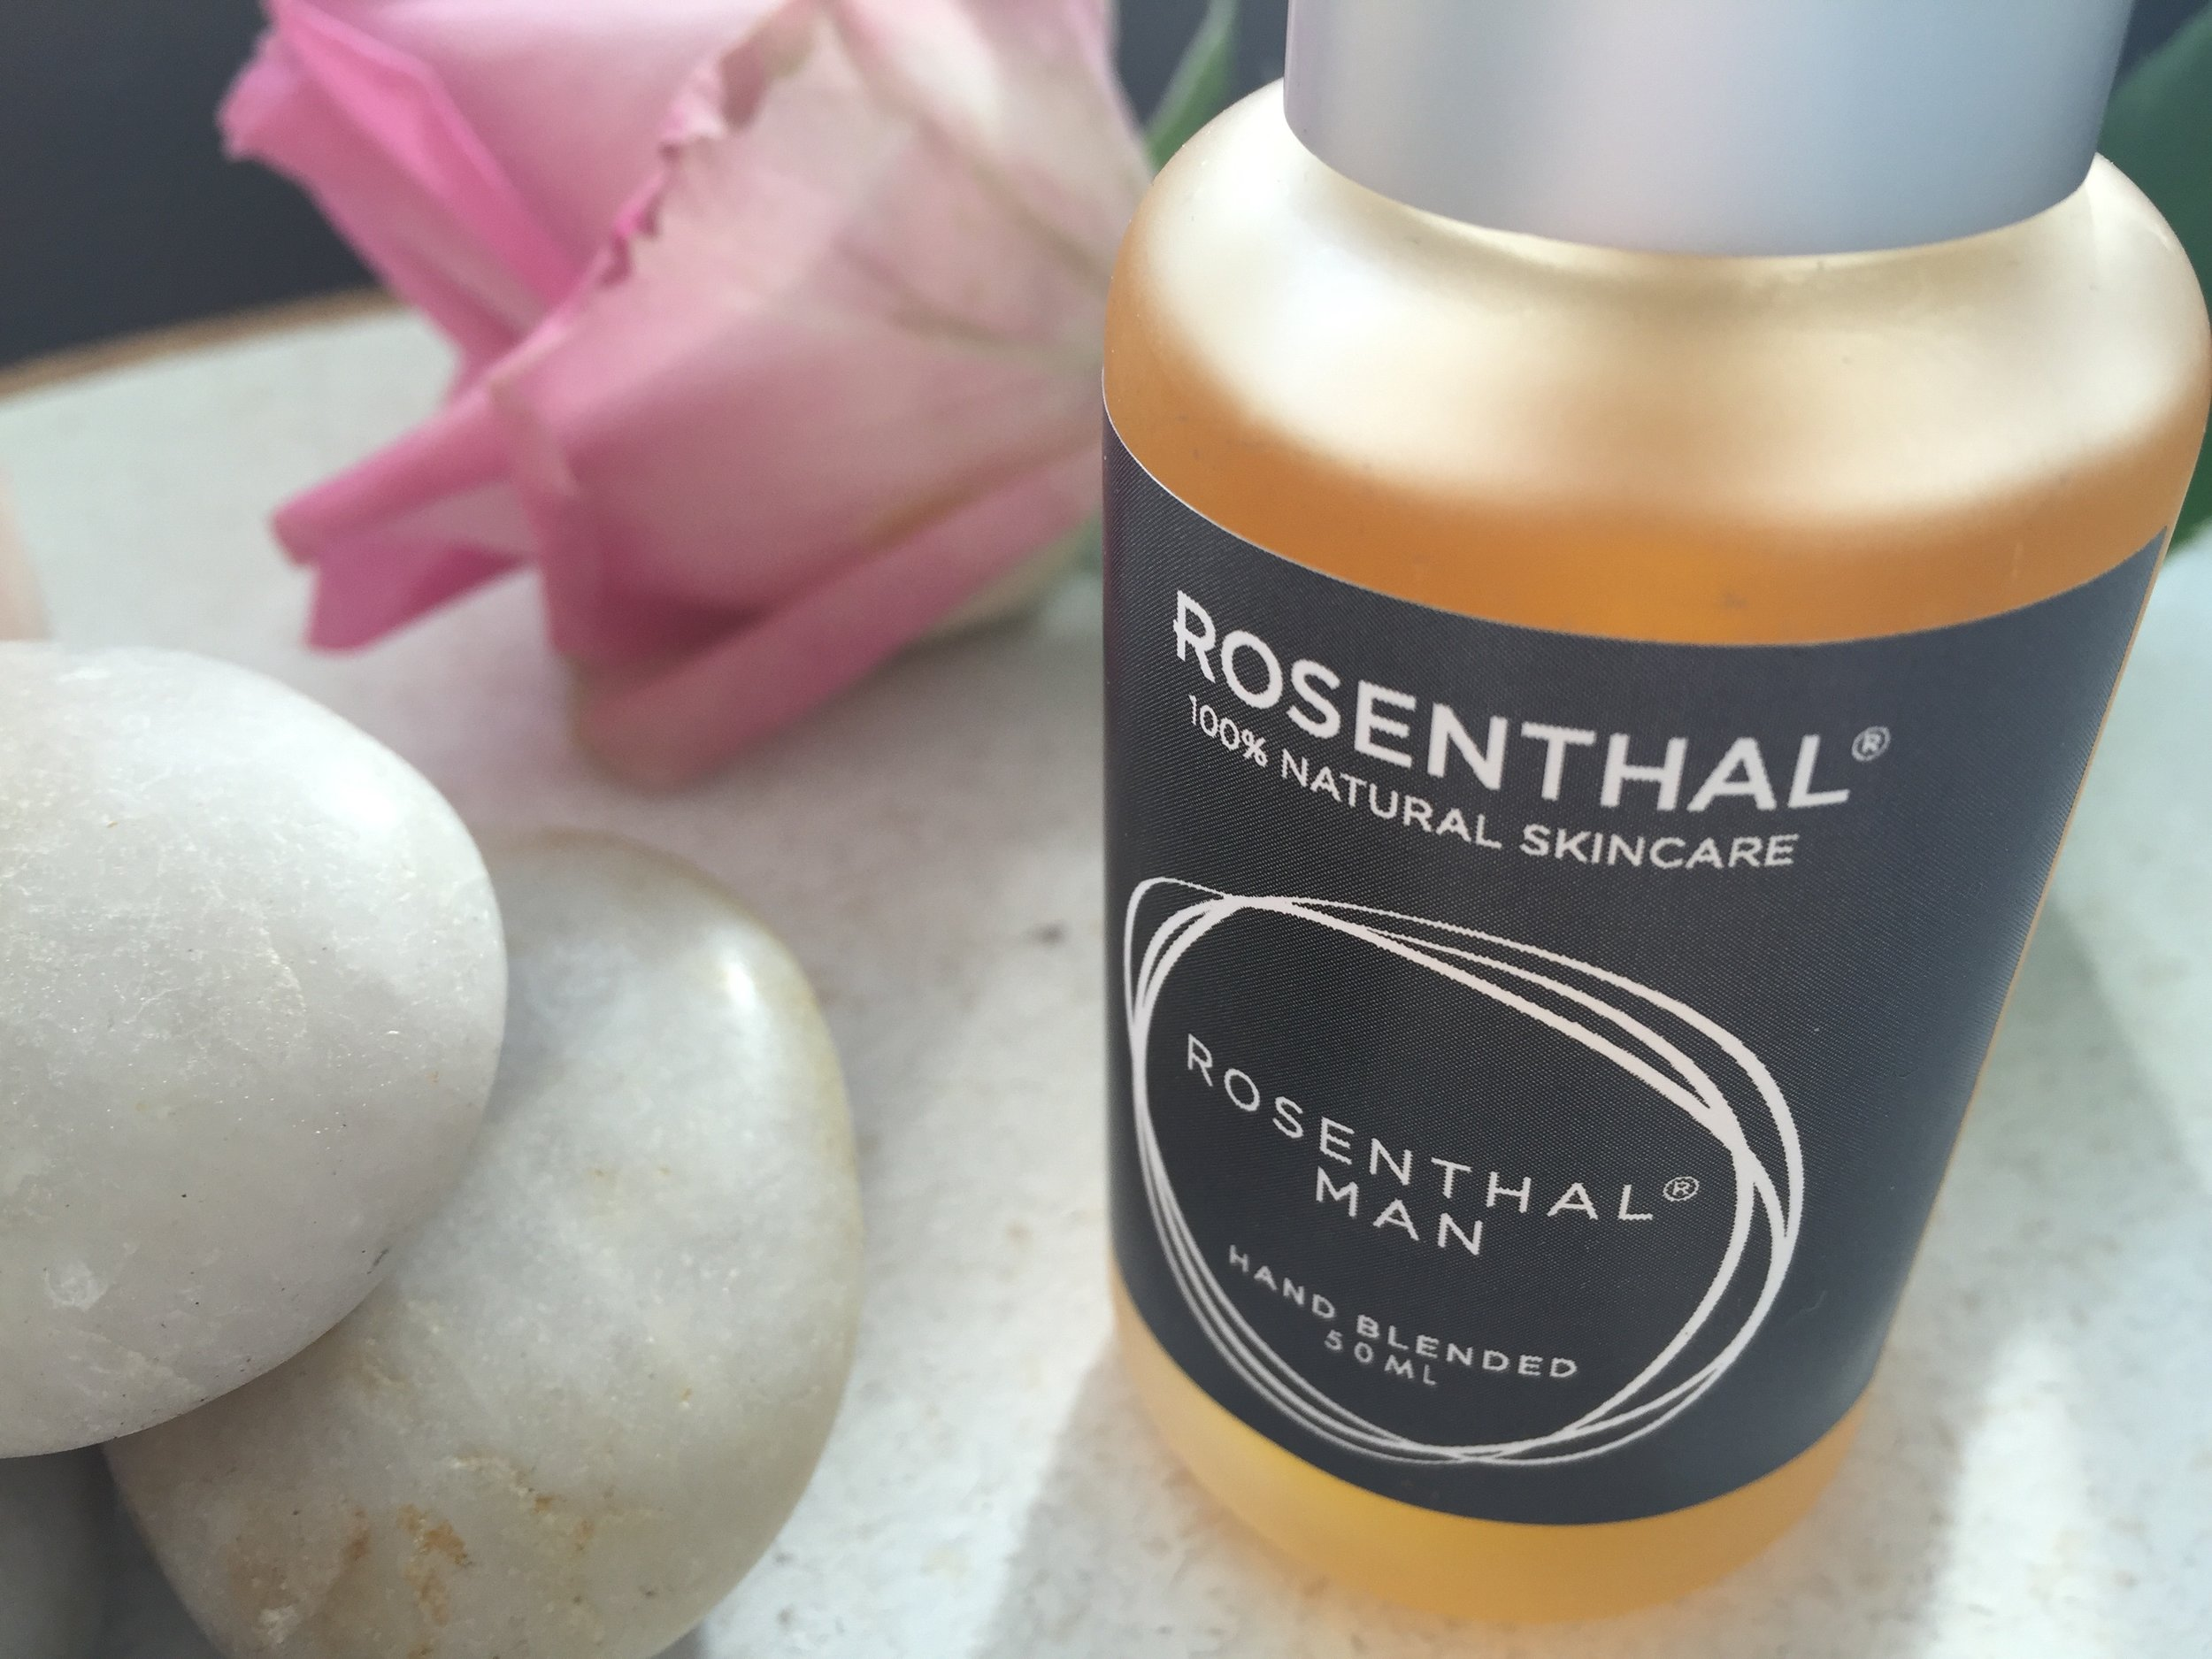 rosenthal man beard oil.jpg